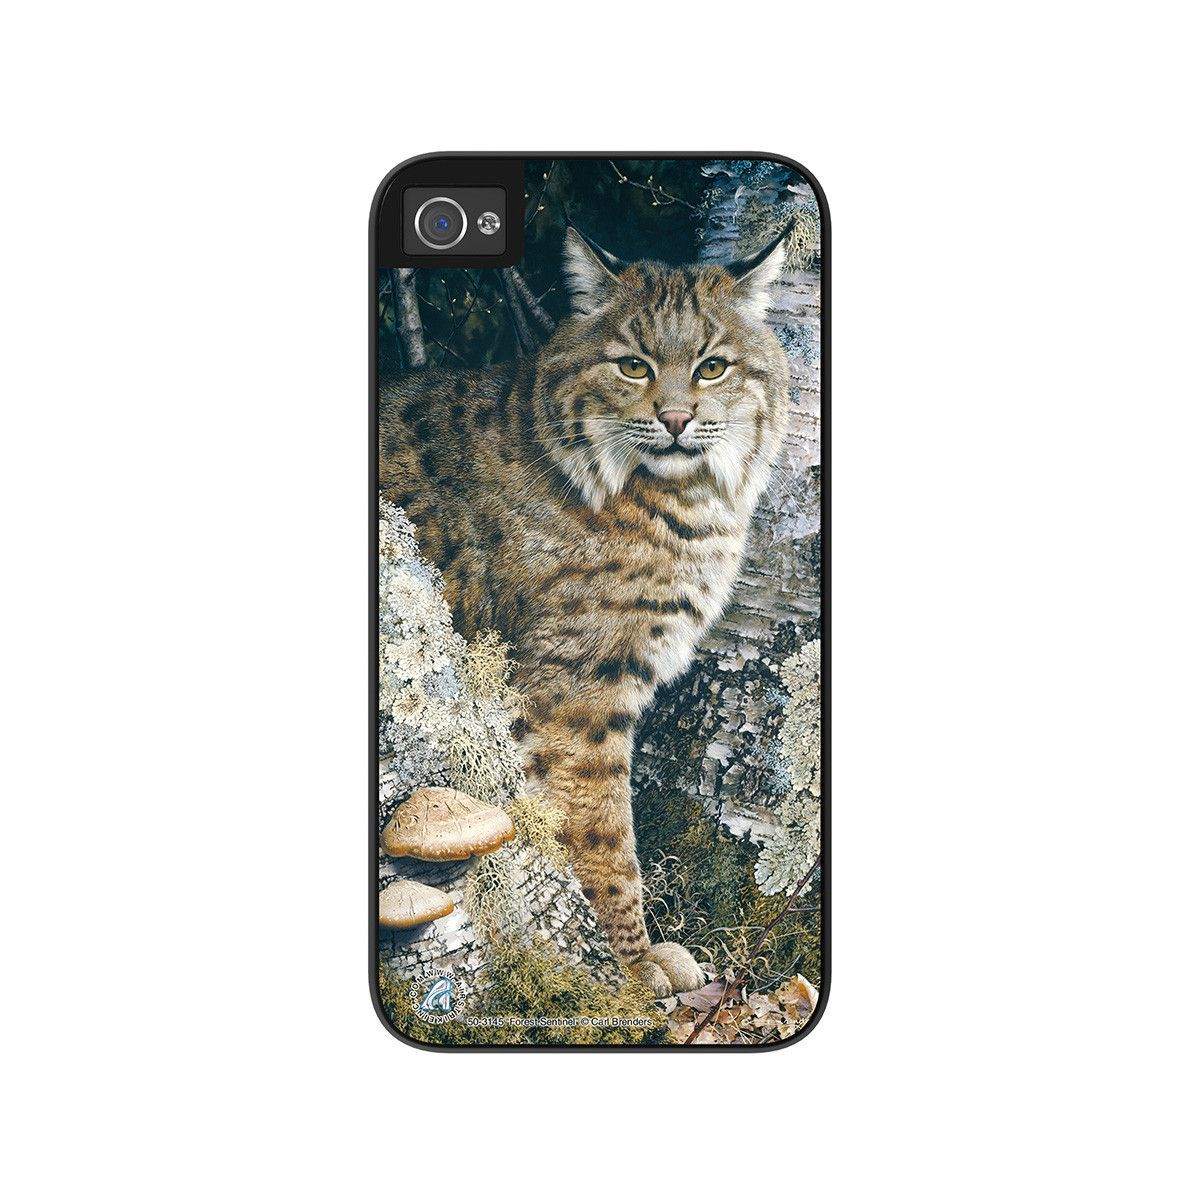 "Airstrike® Bobcat iPhone 5 Case, Bobcat iPhone 5s Case, Bobcat iPhone Cover Protective Phone Case ""Forest Sentinel"" 50-3145"